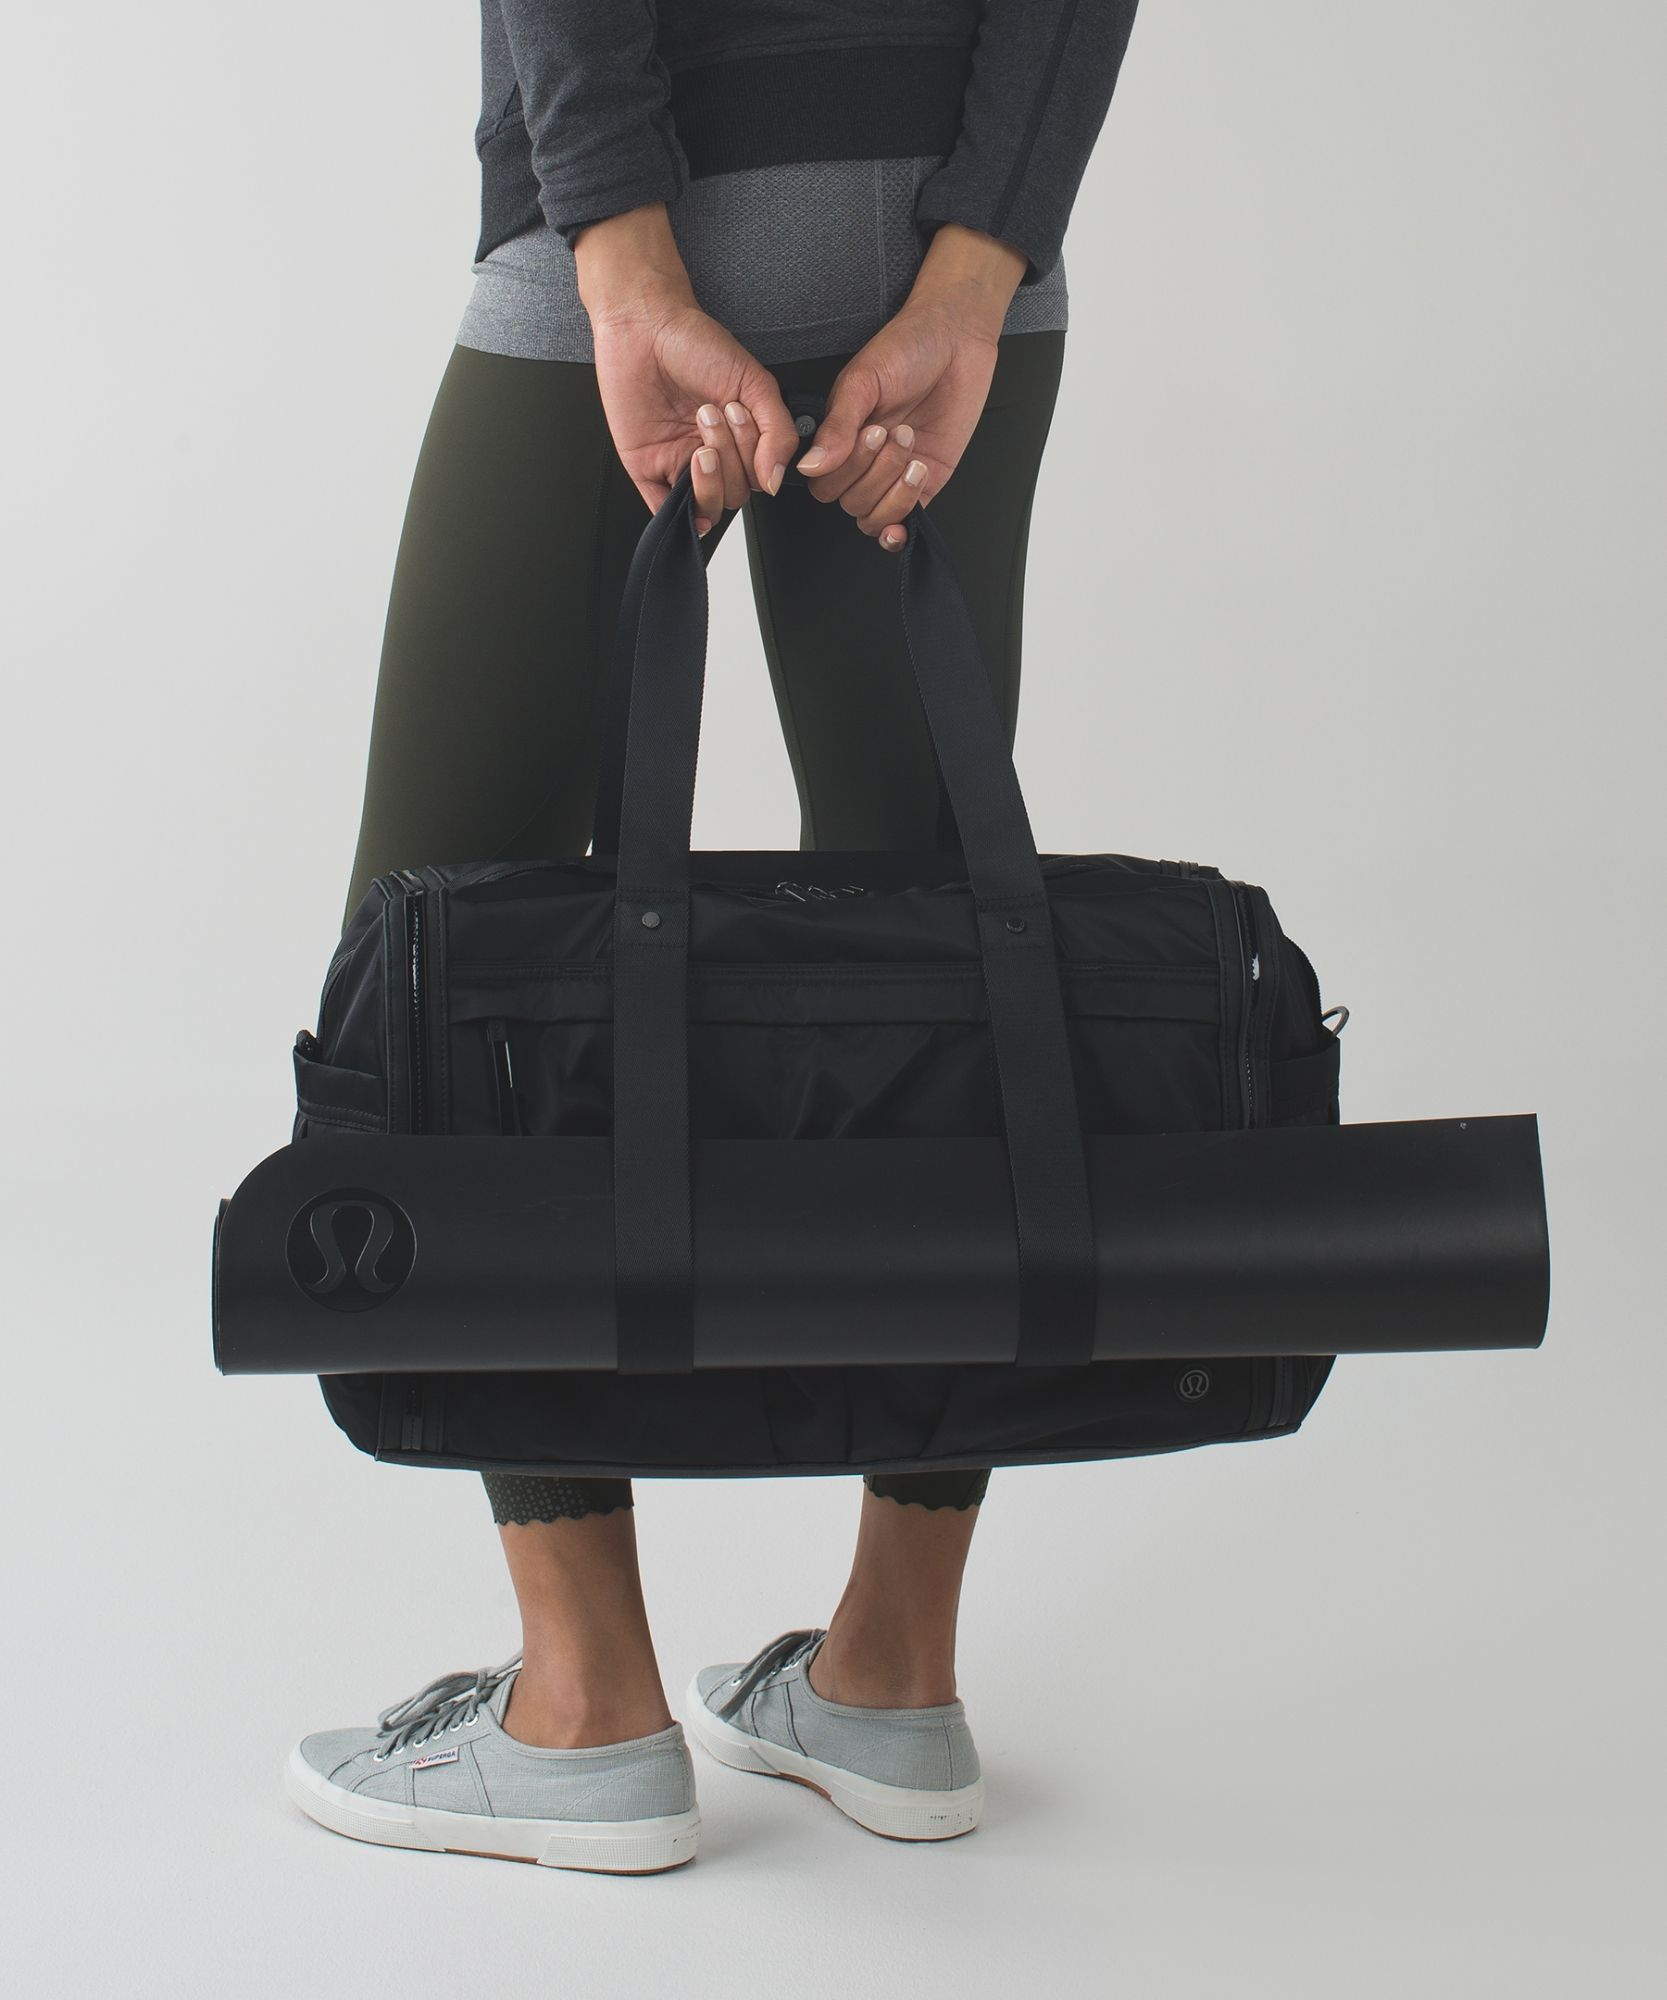 Forget Packing Light This Roomy Duffel Fits Everything You Need With Room To Spare Gym Bag Yoga Bag Bags